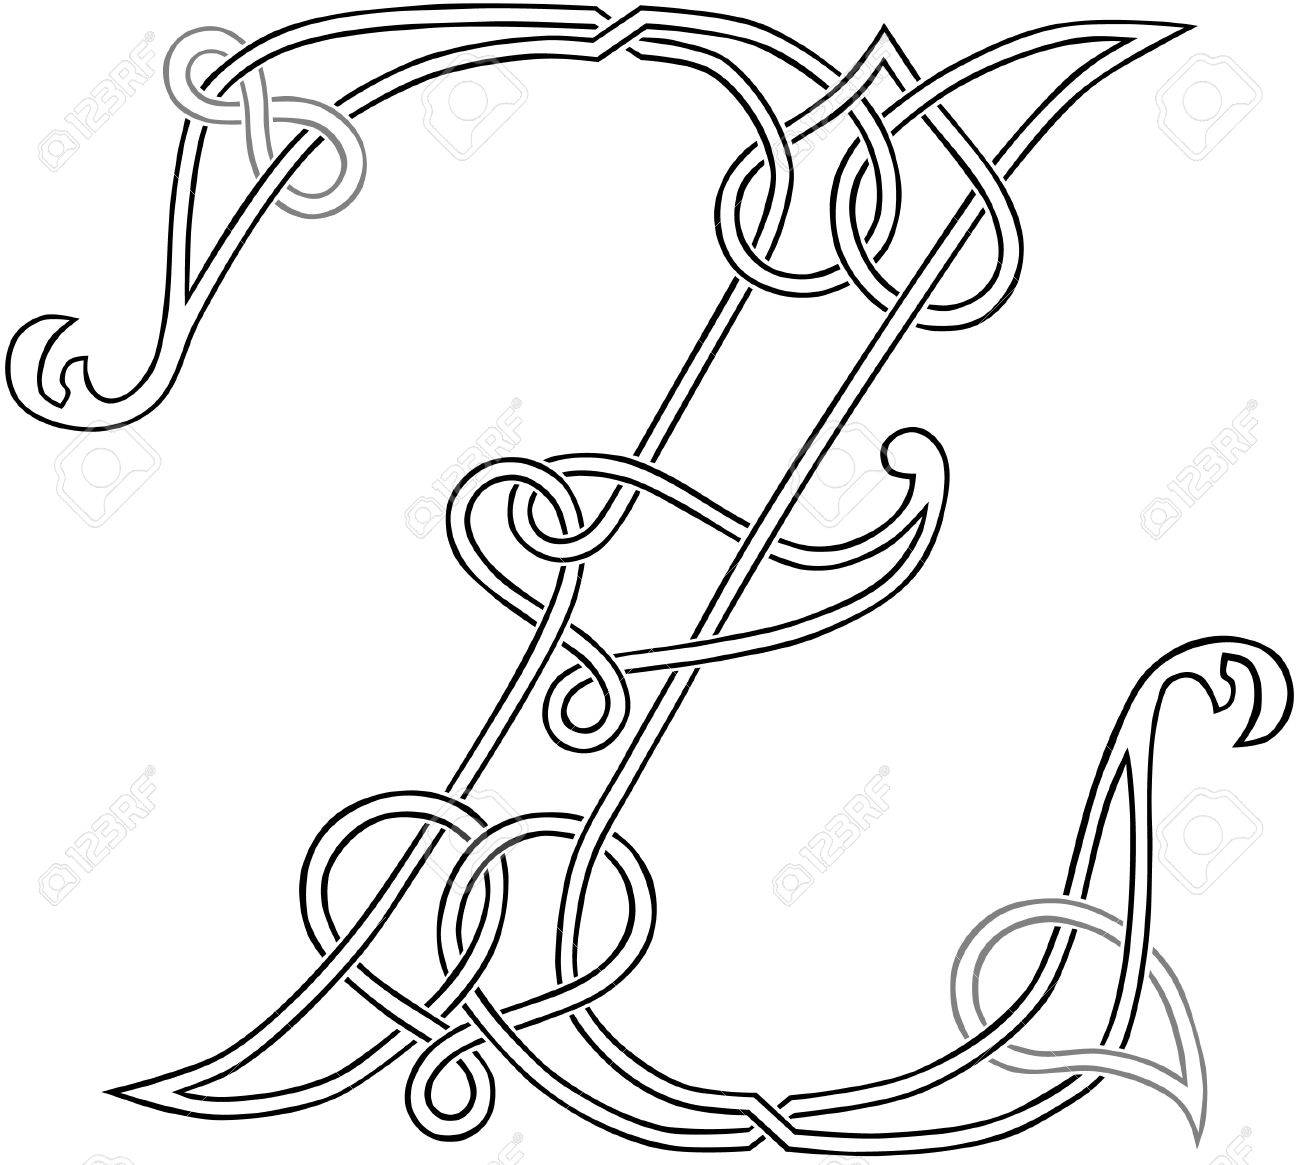 A celtic knot work capital letter z stylized outline royalty free a celtic knot work capital letter z stylized outline stock vector 13895971 spiritdancerdesigns Image collections